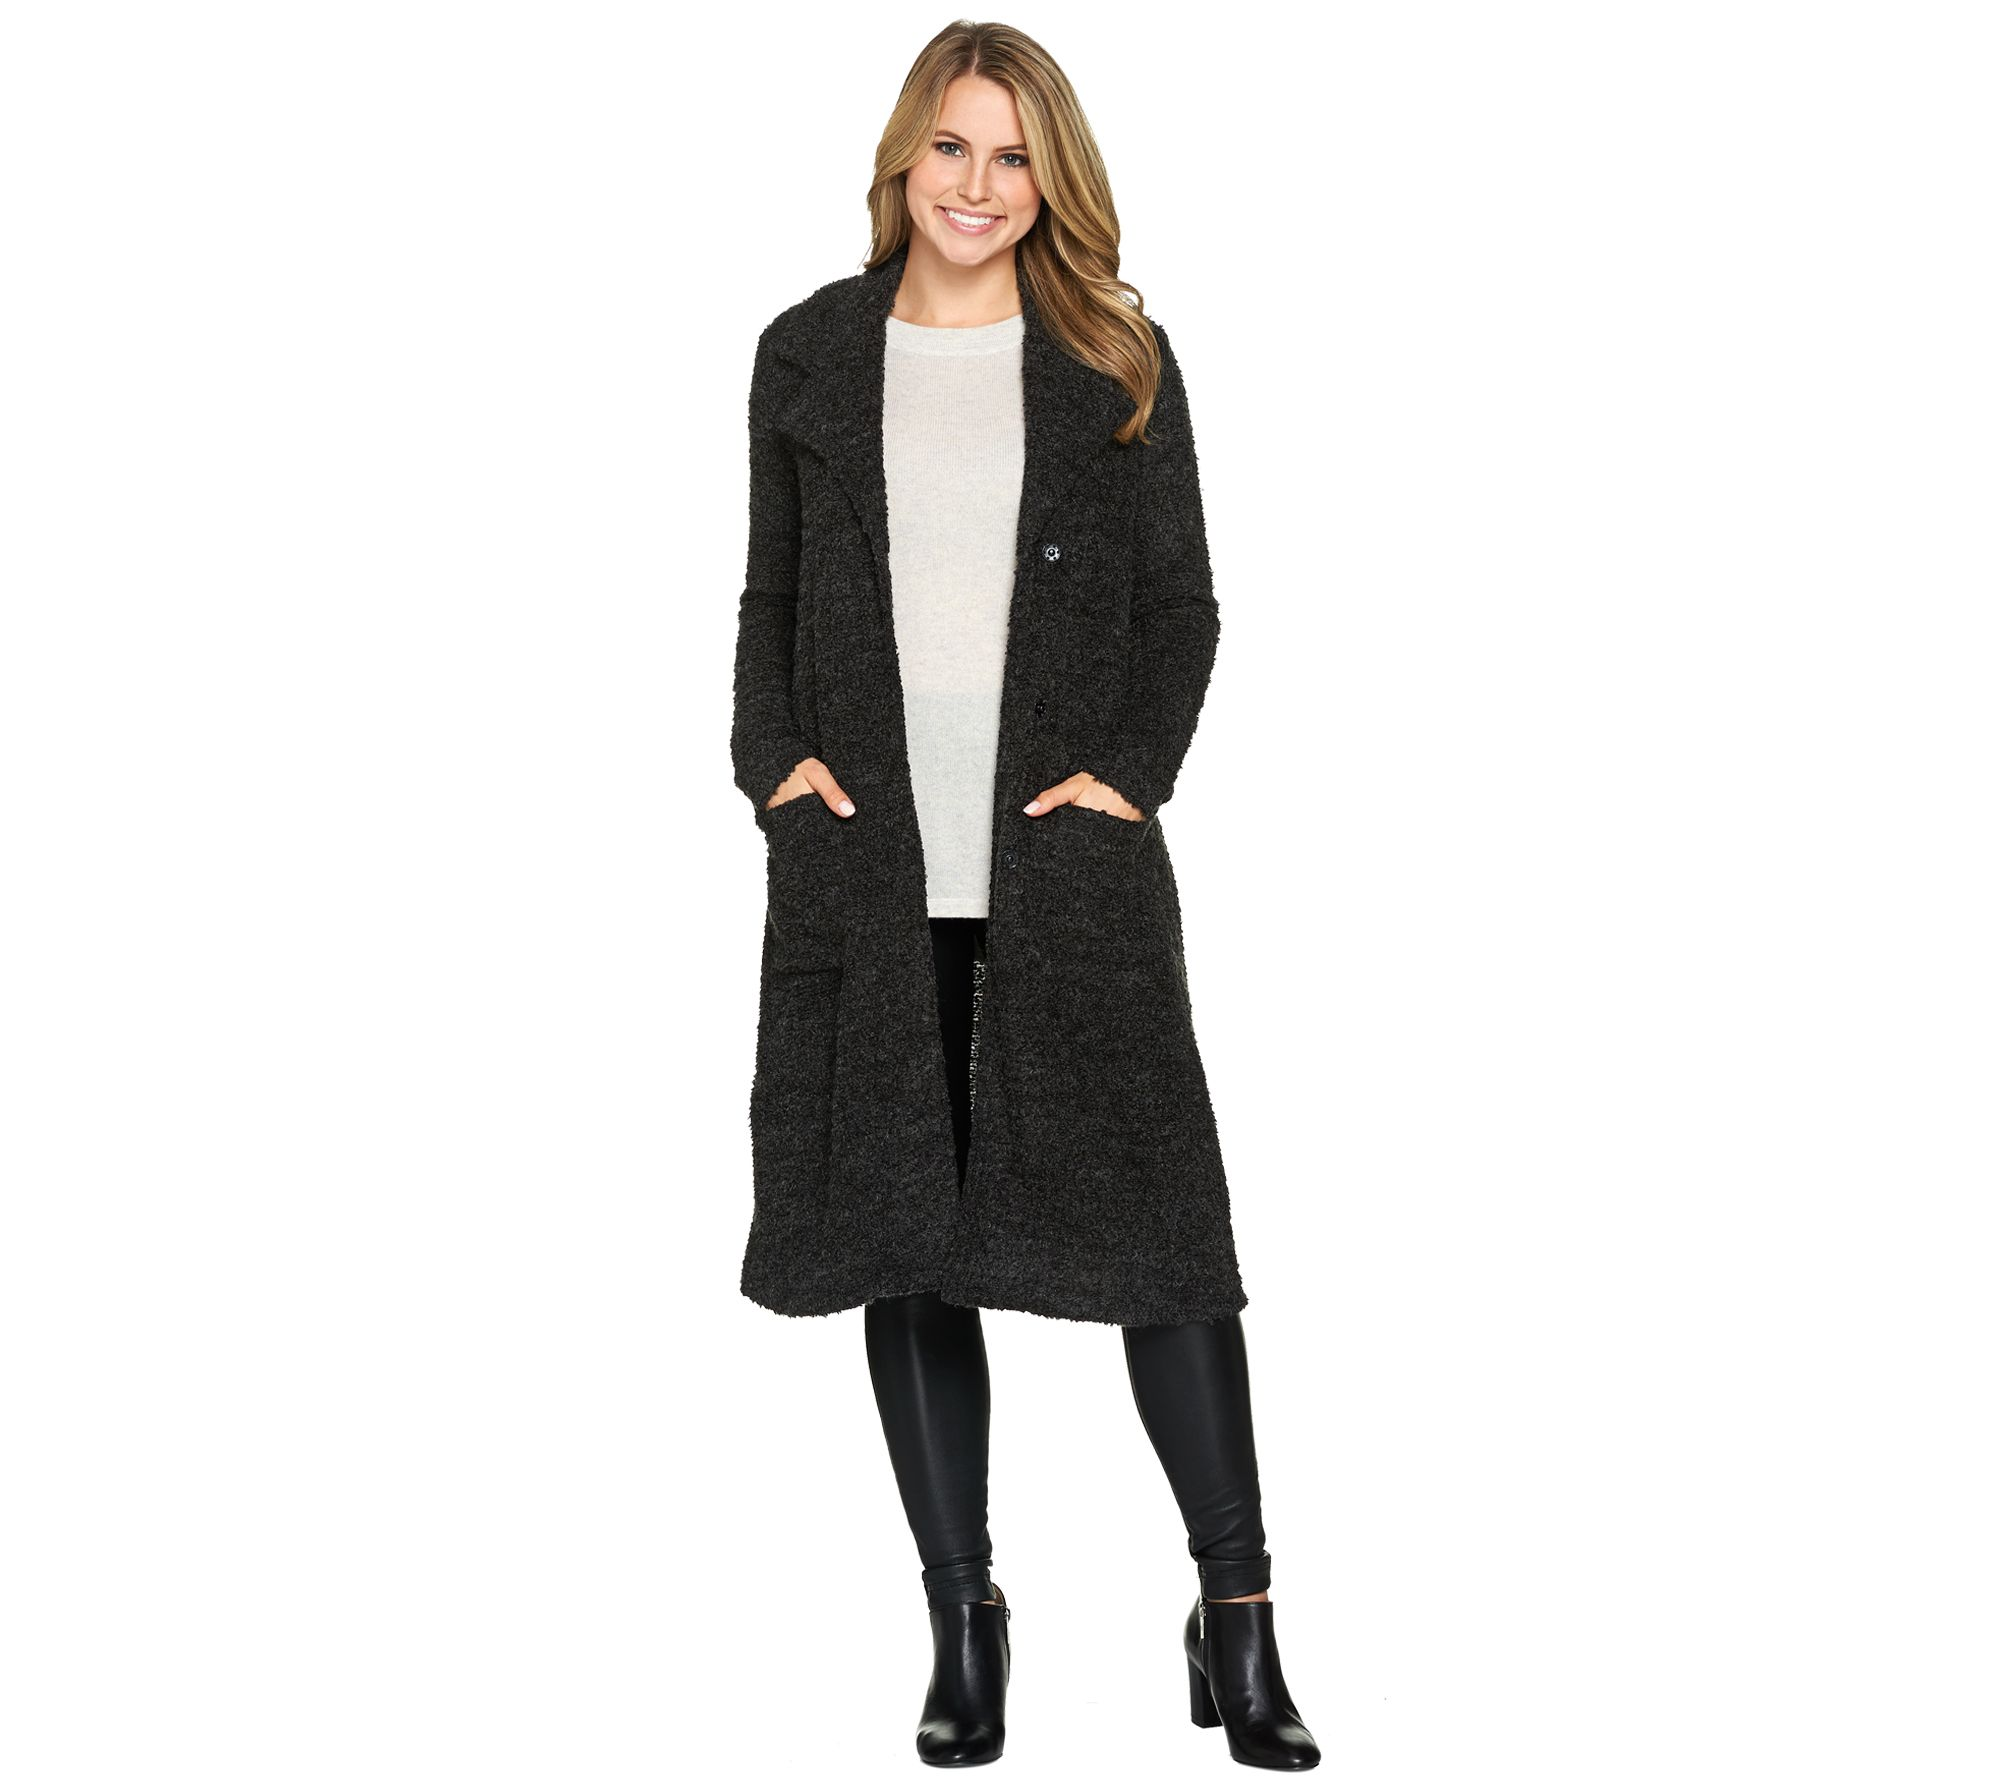 6f7e14c2965be3 Lisa Rinna Collection Duster with Oversized Lapels - Page 1 — QVC.com